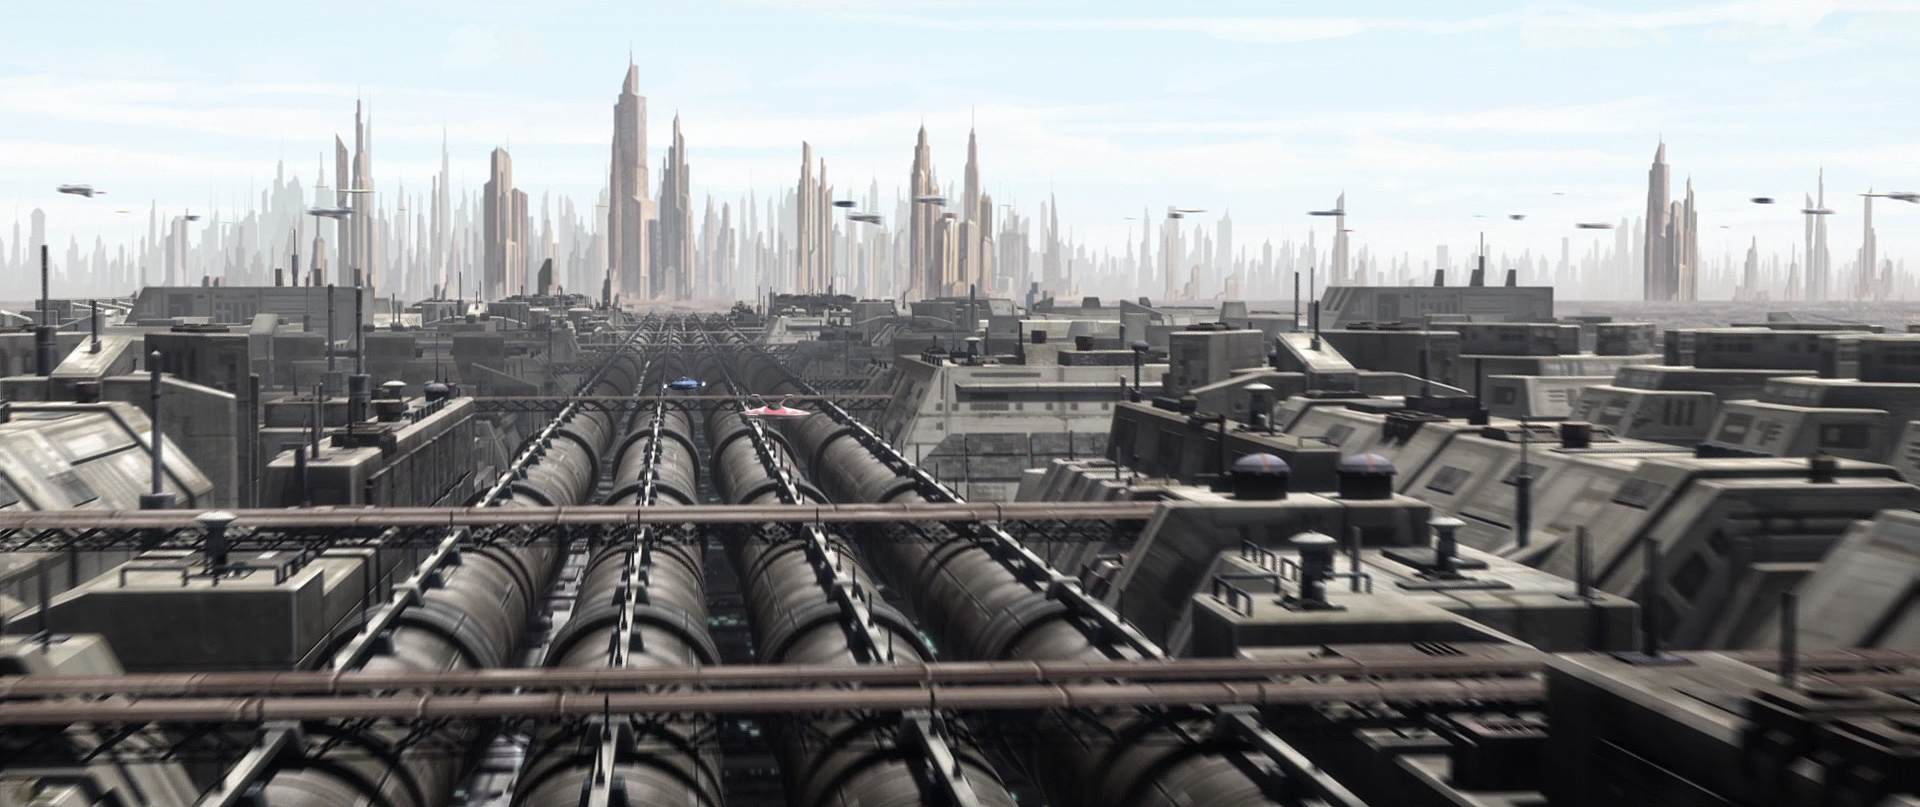 Star Wars Republic Military Base Concept